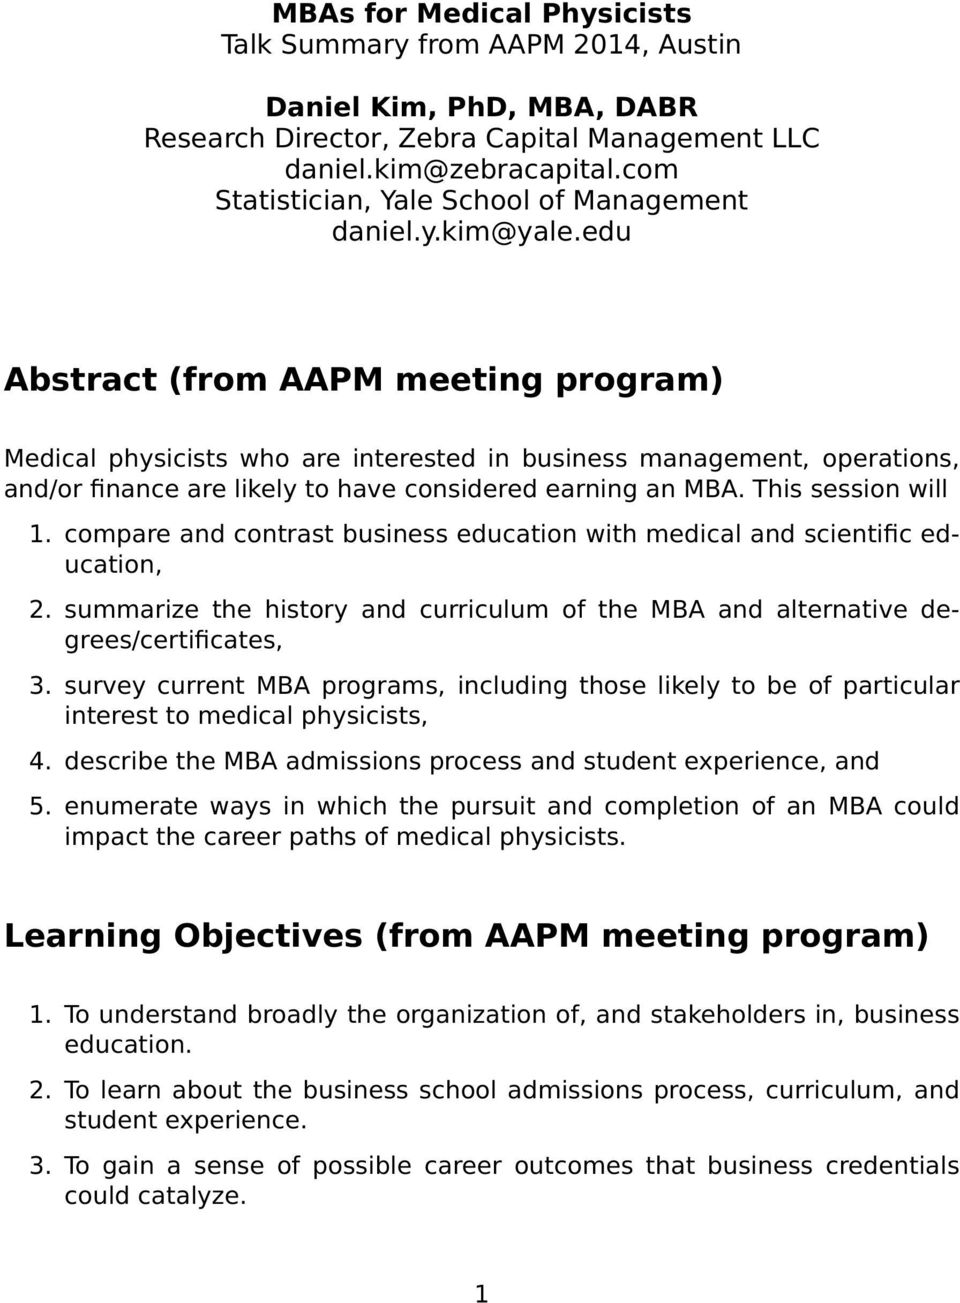 edu Abstract (from AAPM meeting program) Medical physicists who are interested in business management, operations, and/or finance are likely to have considered earning an MBA. This session will 1.